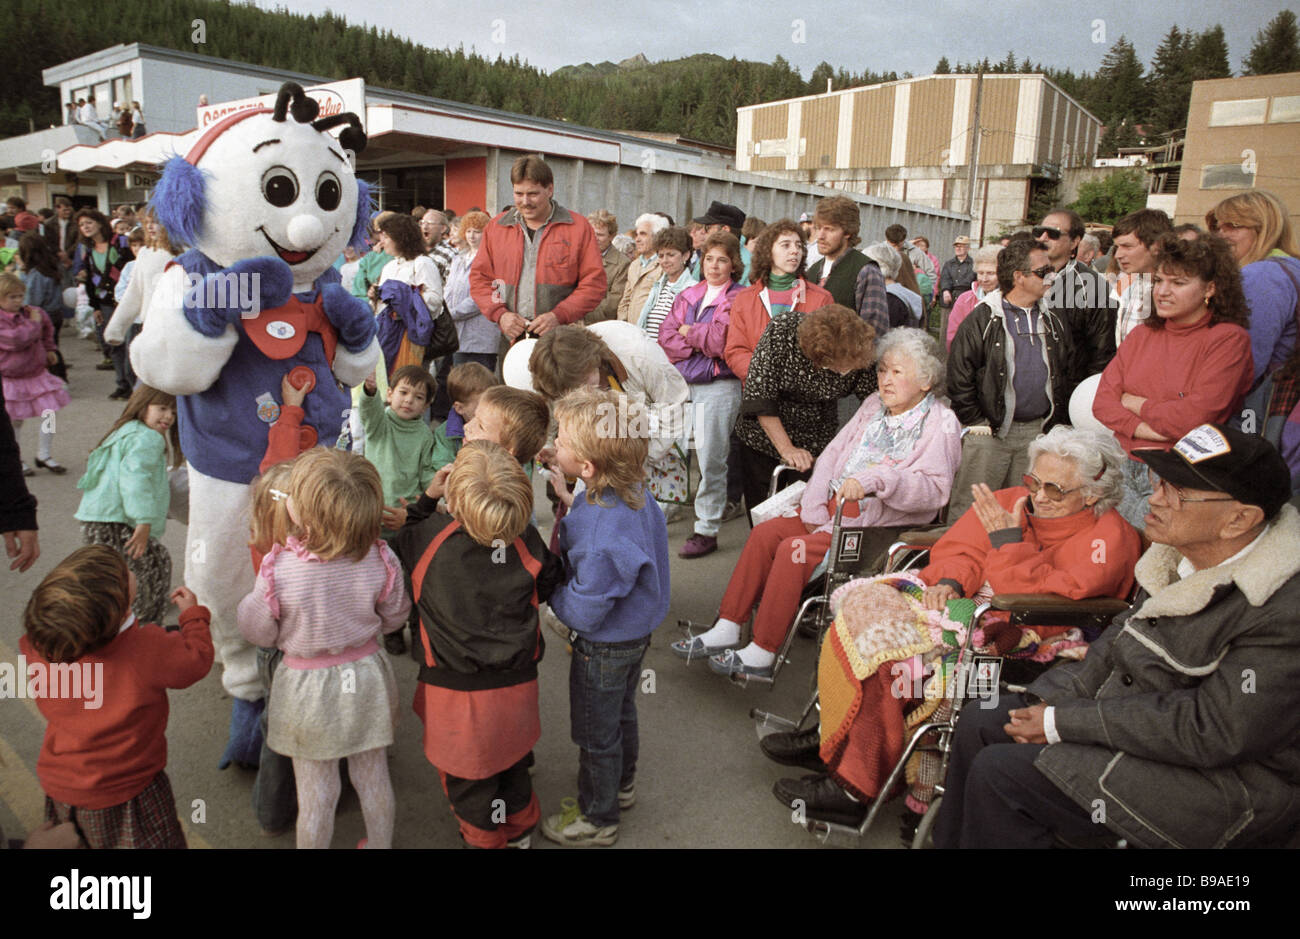 Festivities in Kordov USA dedicated to the 250th anniversary of The Russian America - Stock Image